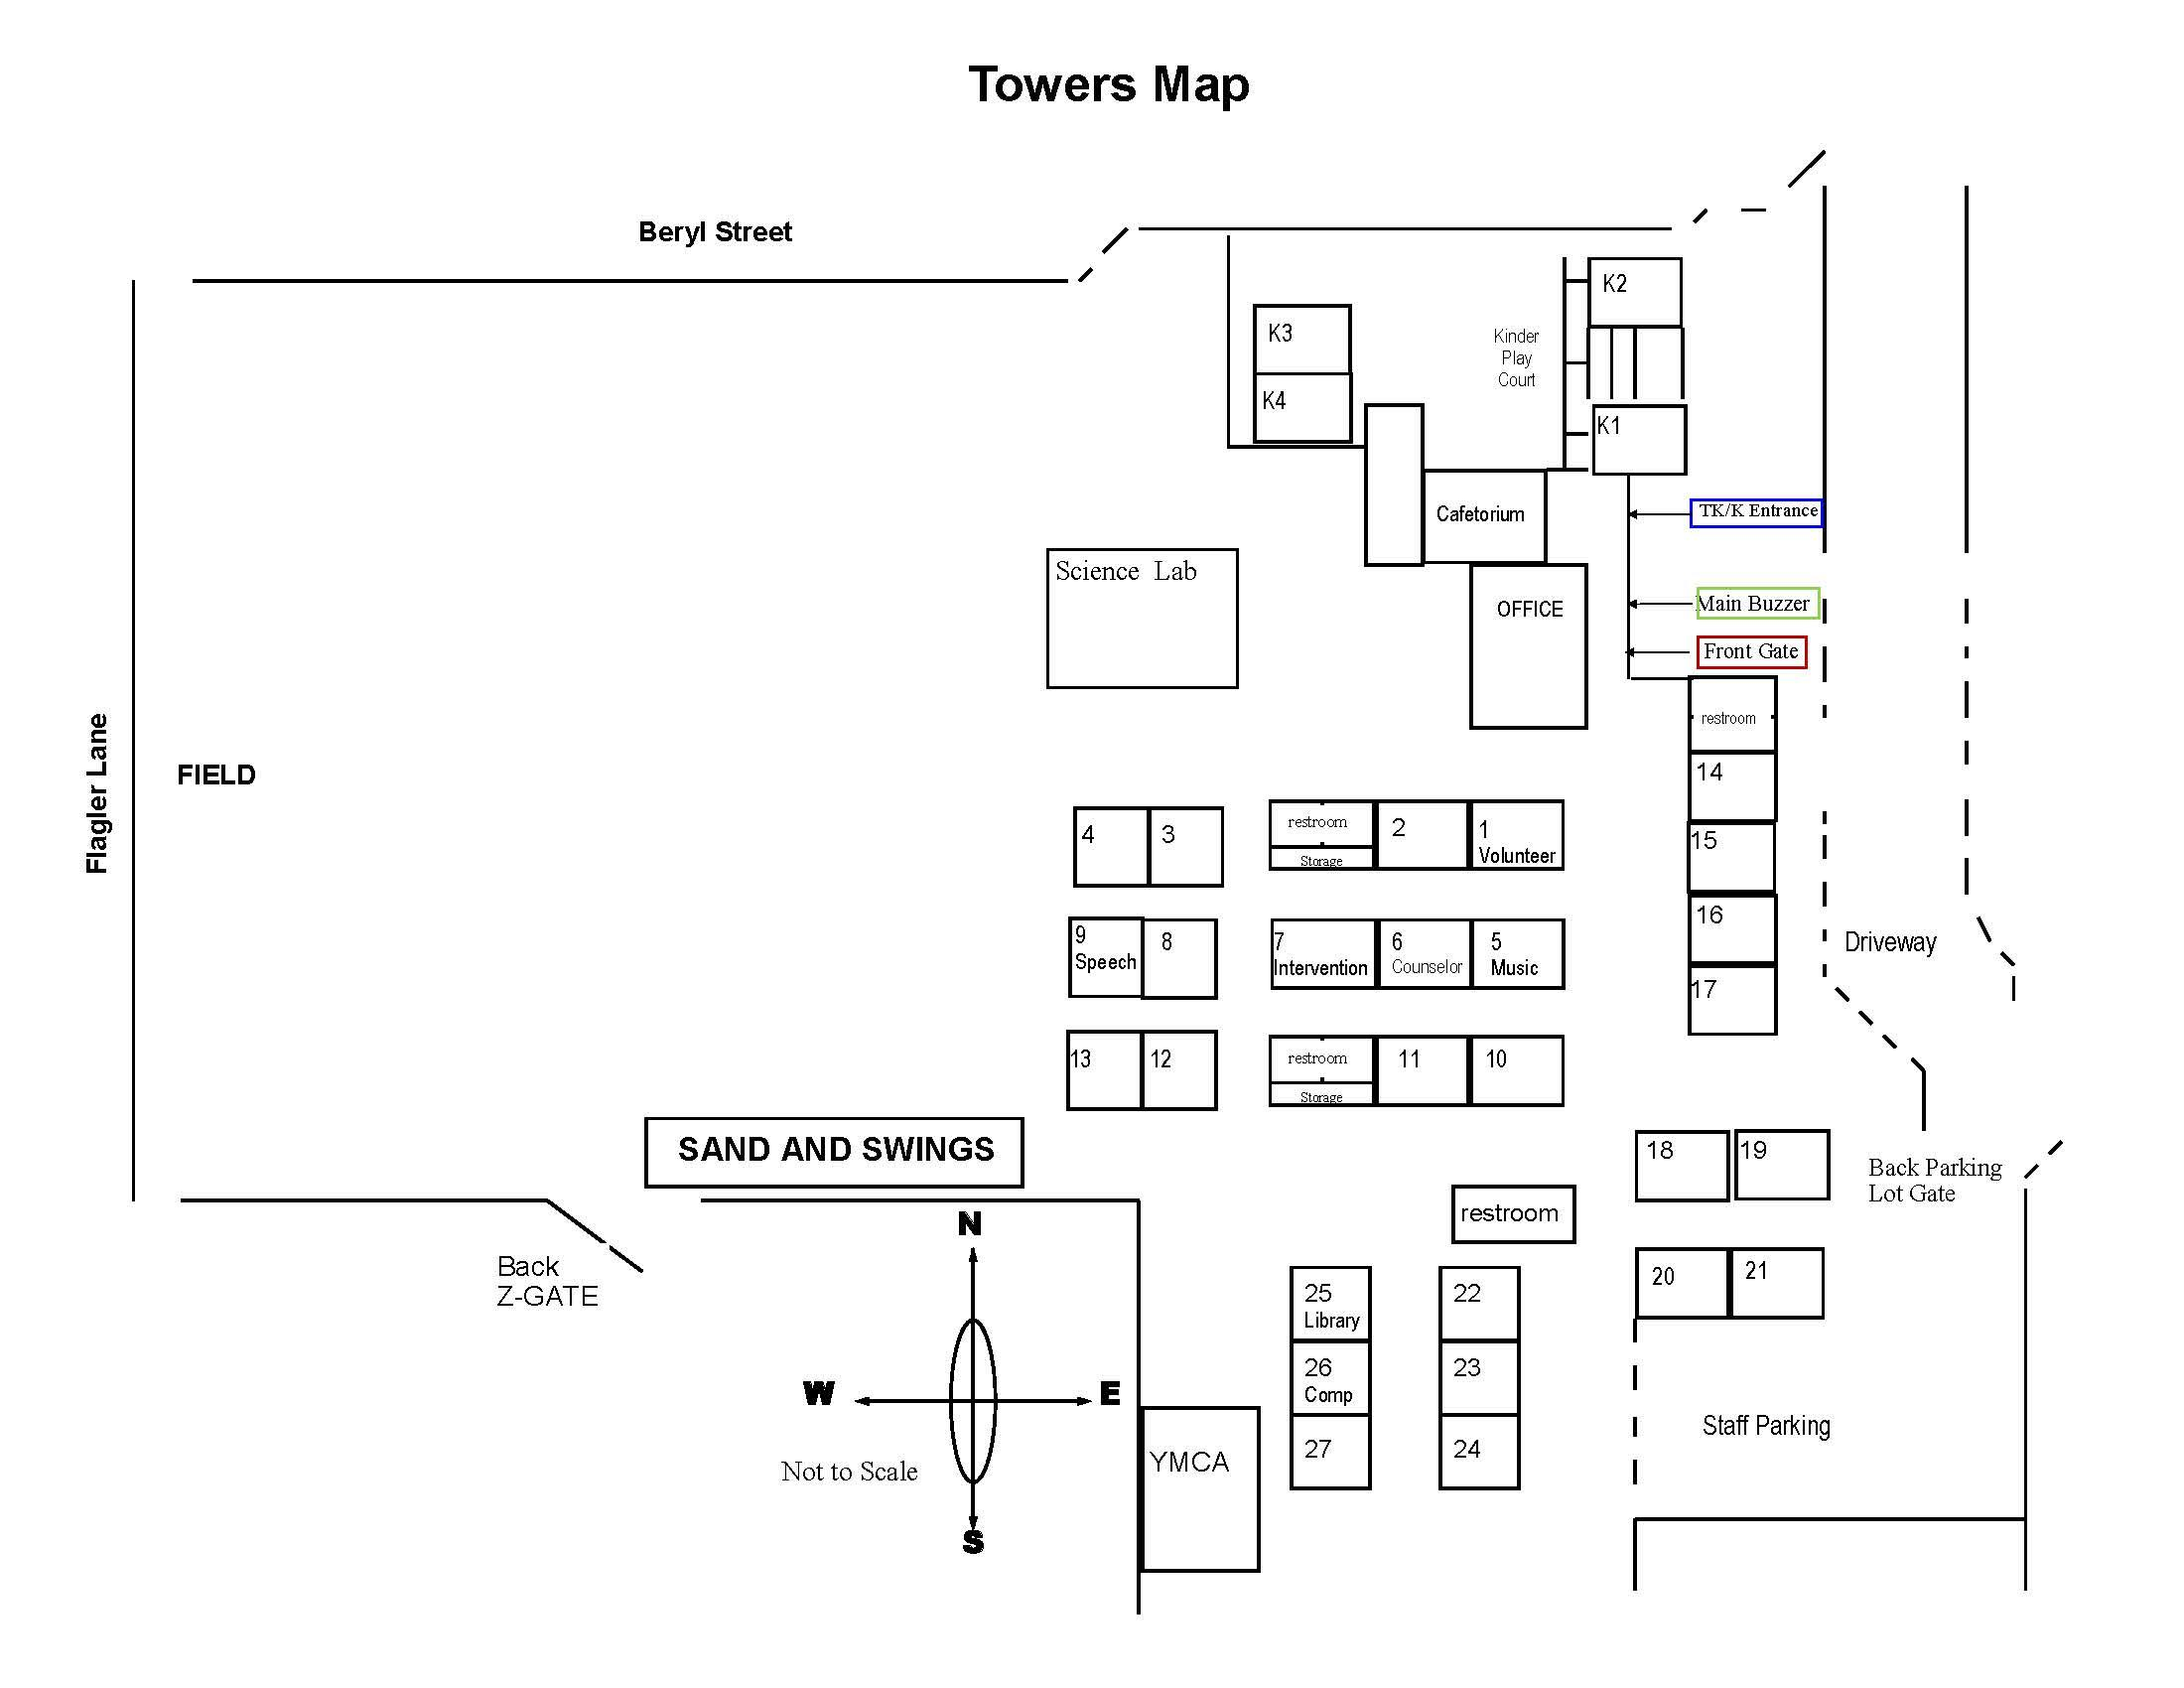 Towers Map